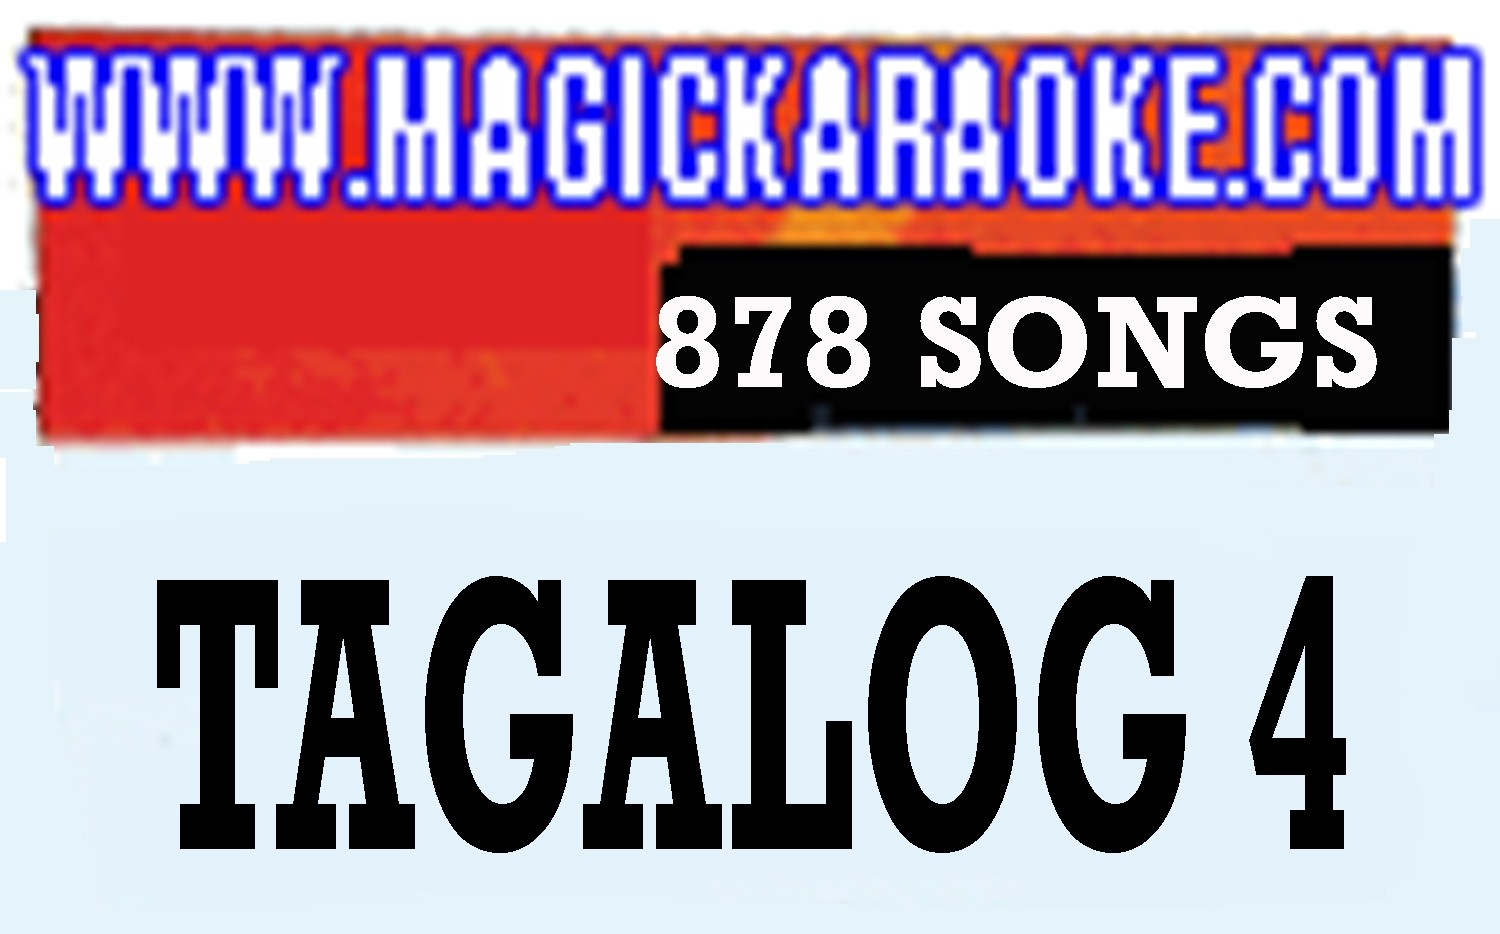 Magic Sing Tagalog 4 20 PINS SALE